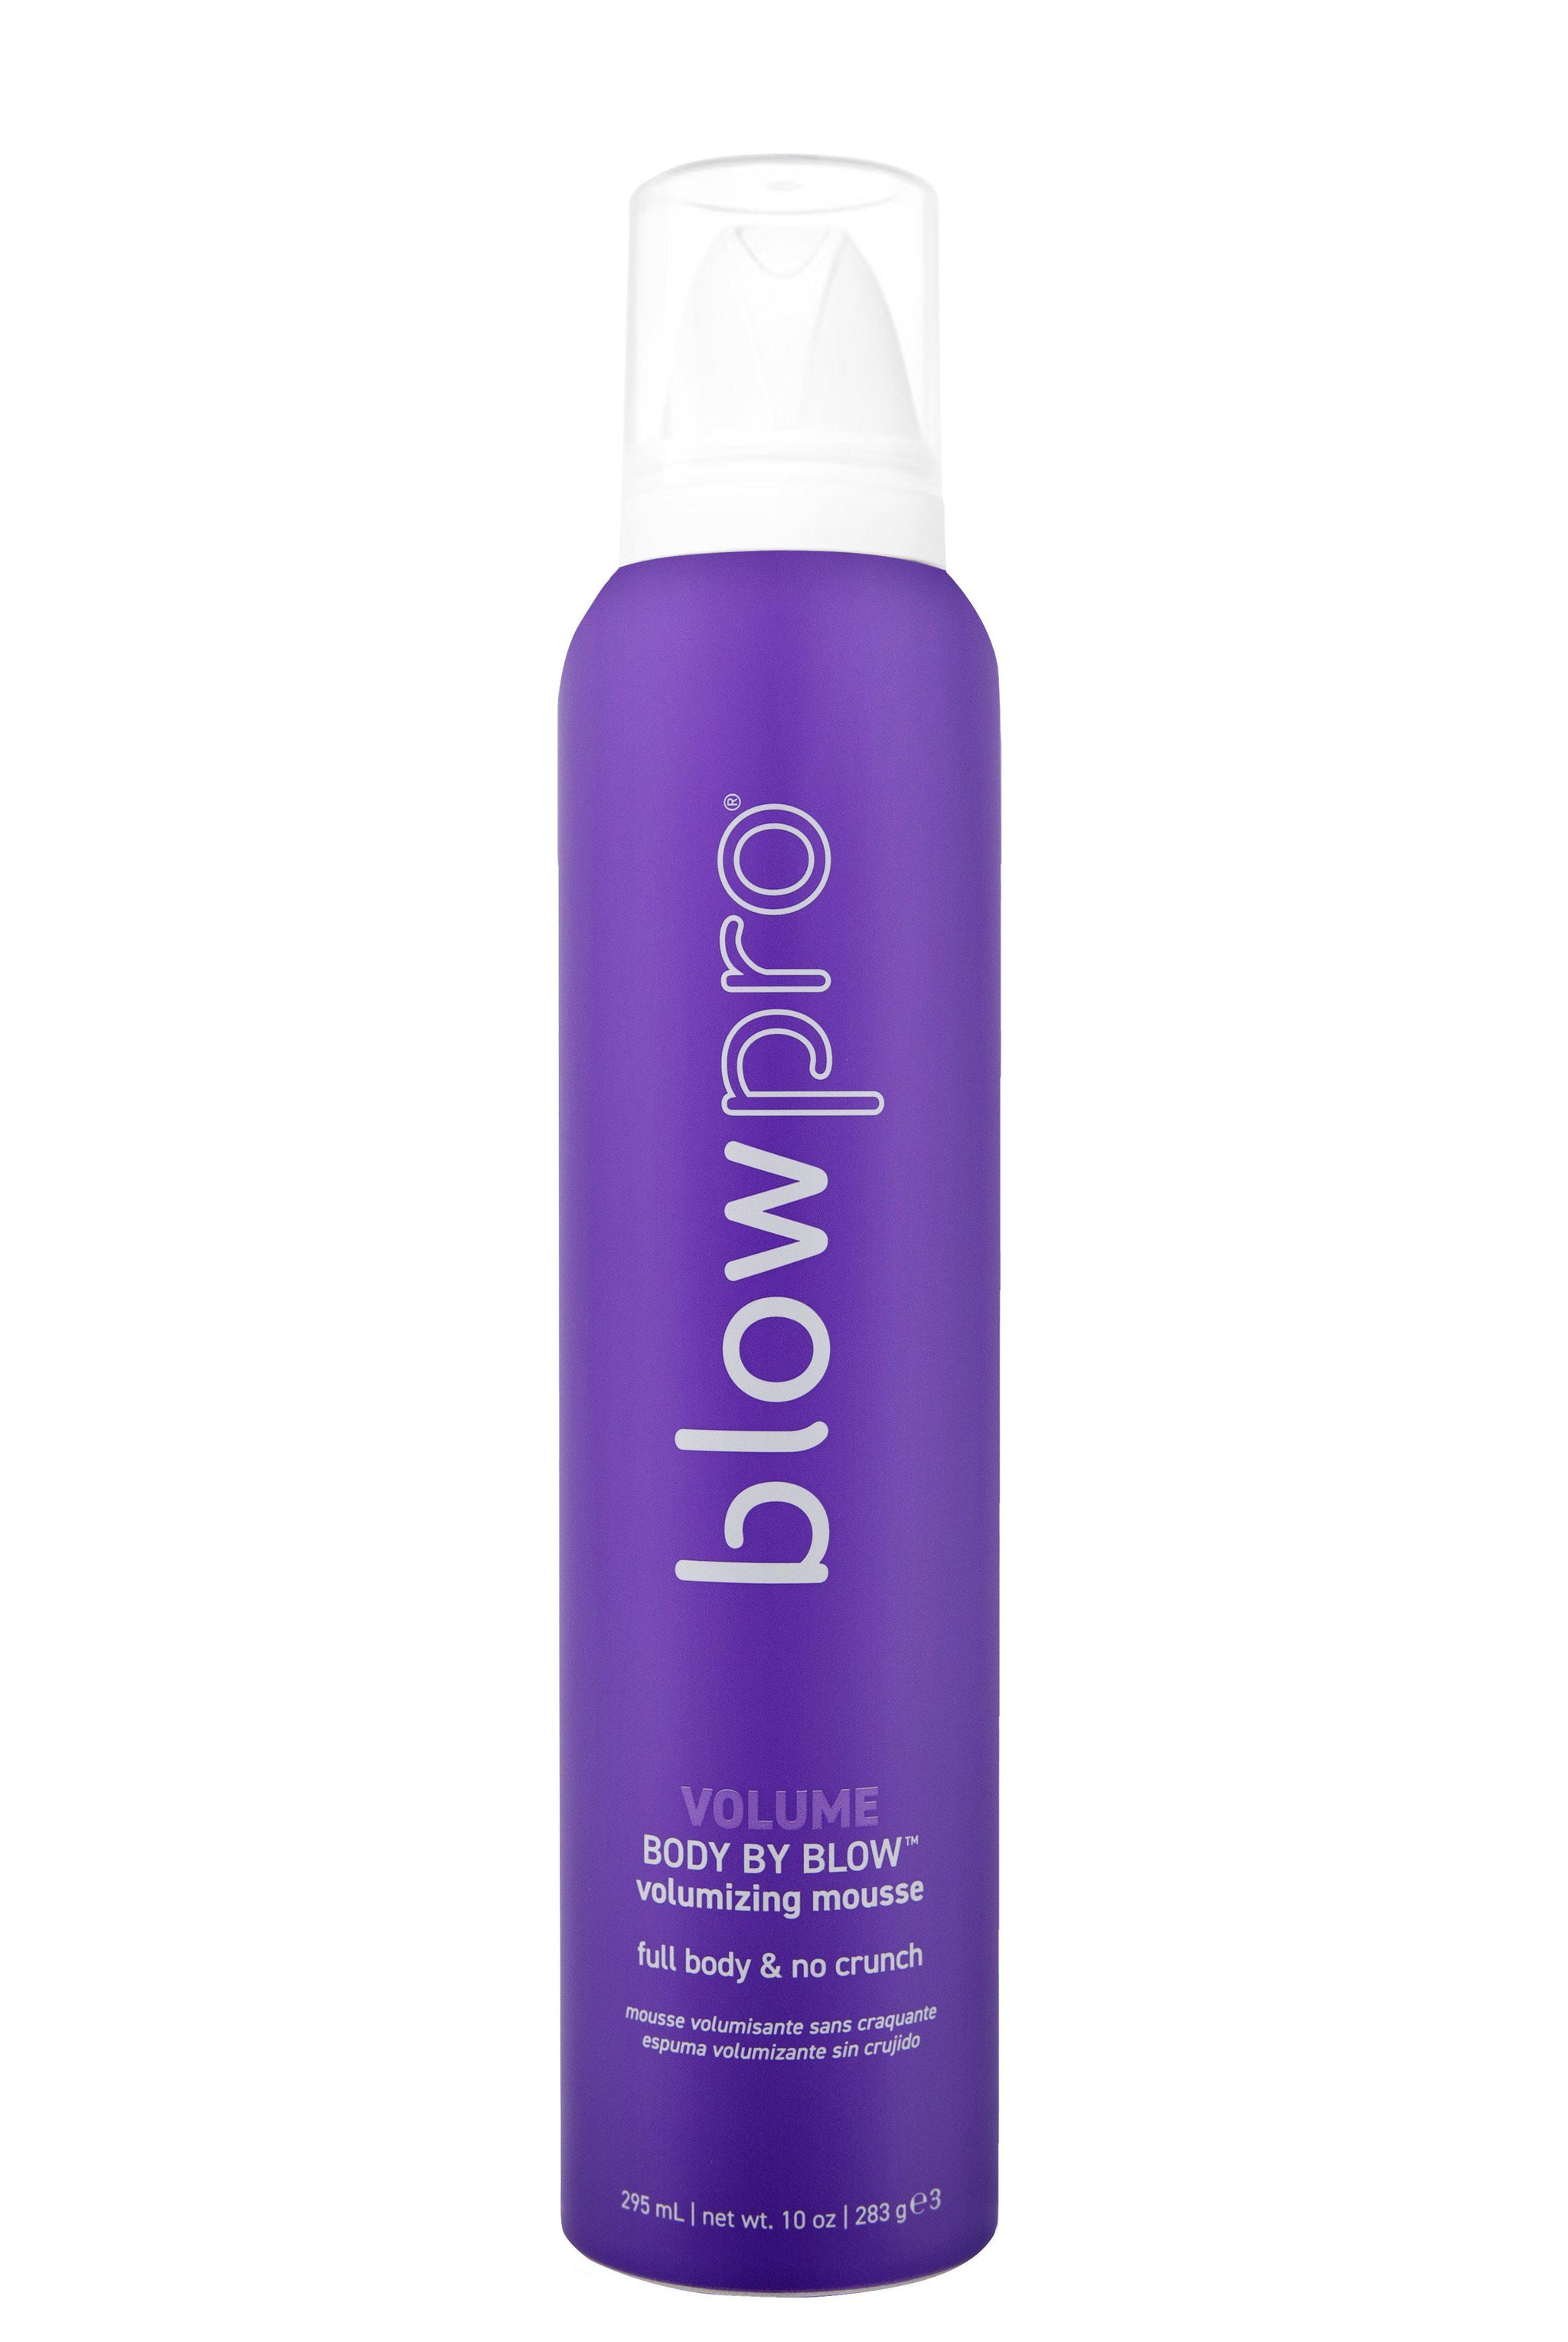 blowpro Body By Blow No Crunch Volumizing Mousse - 10 oz